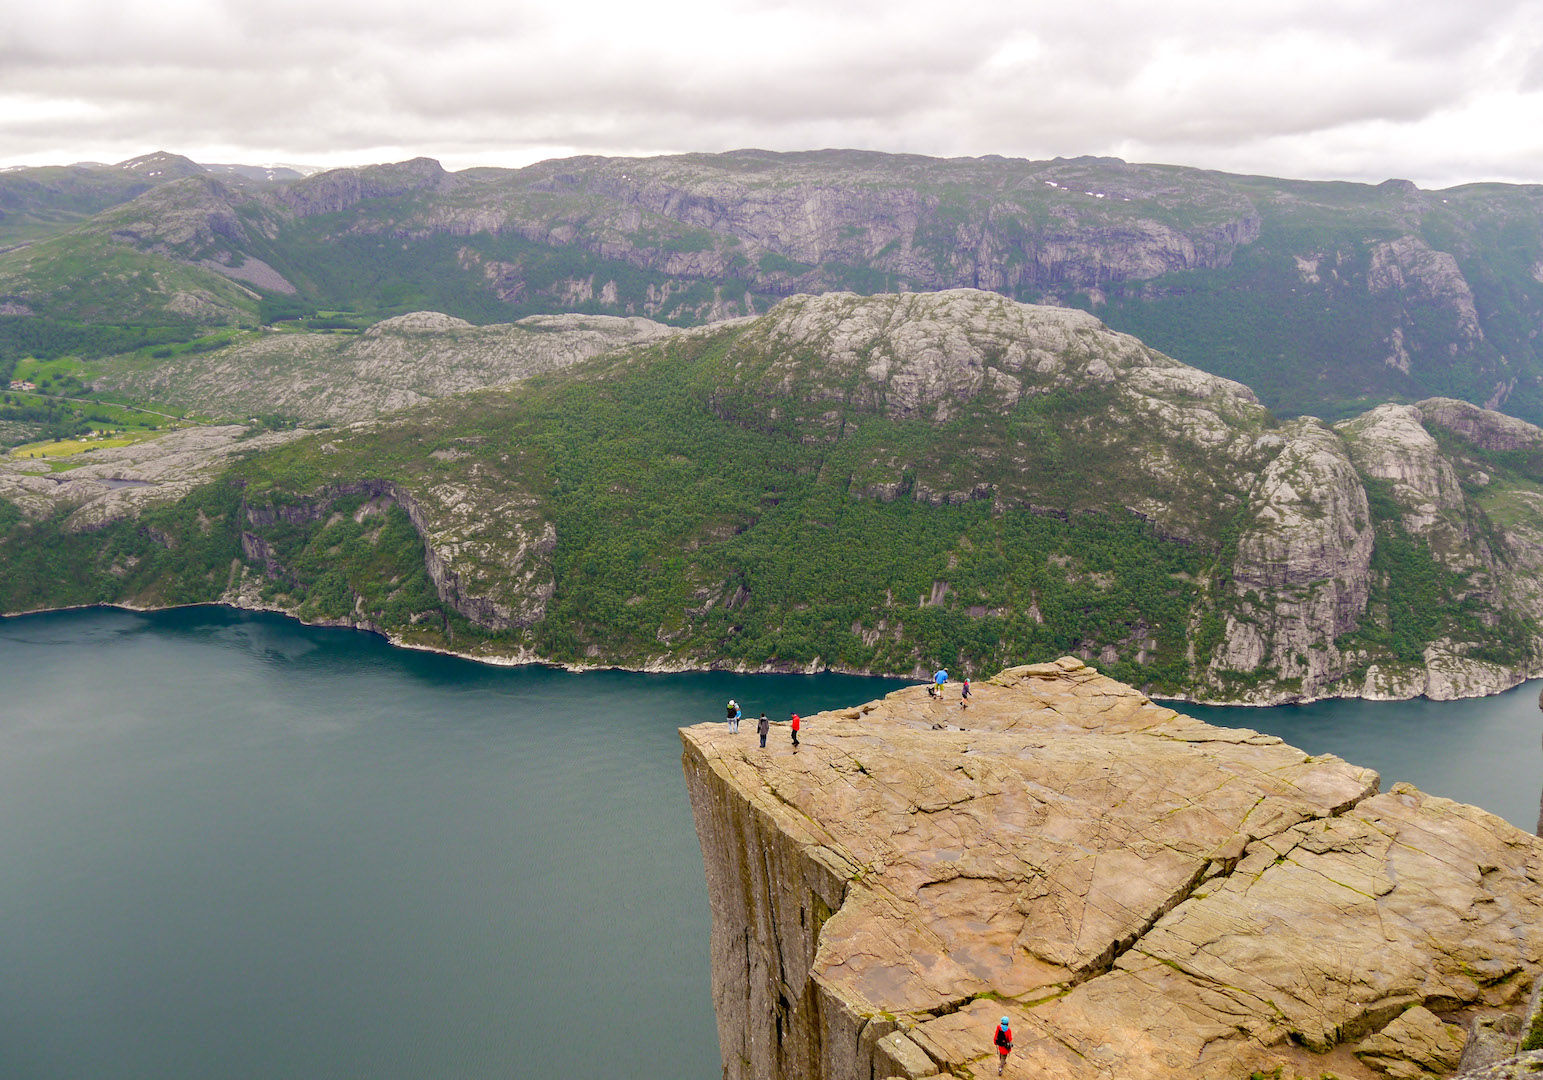 fjord norway preikestolen water rock people mountain